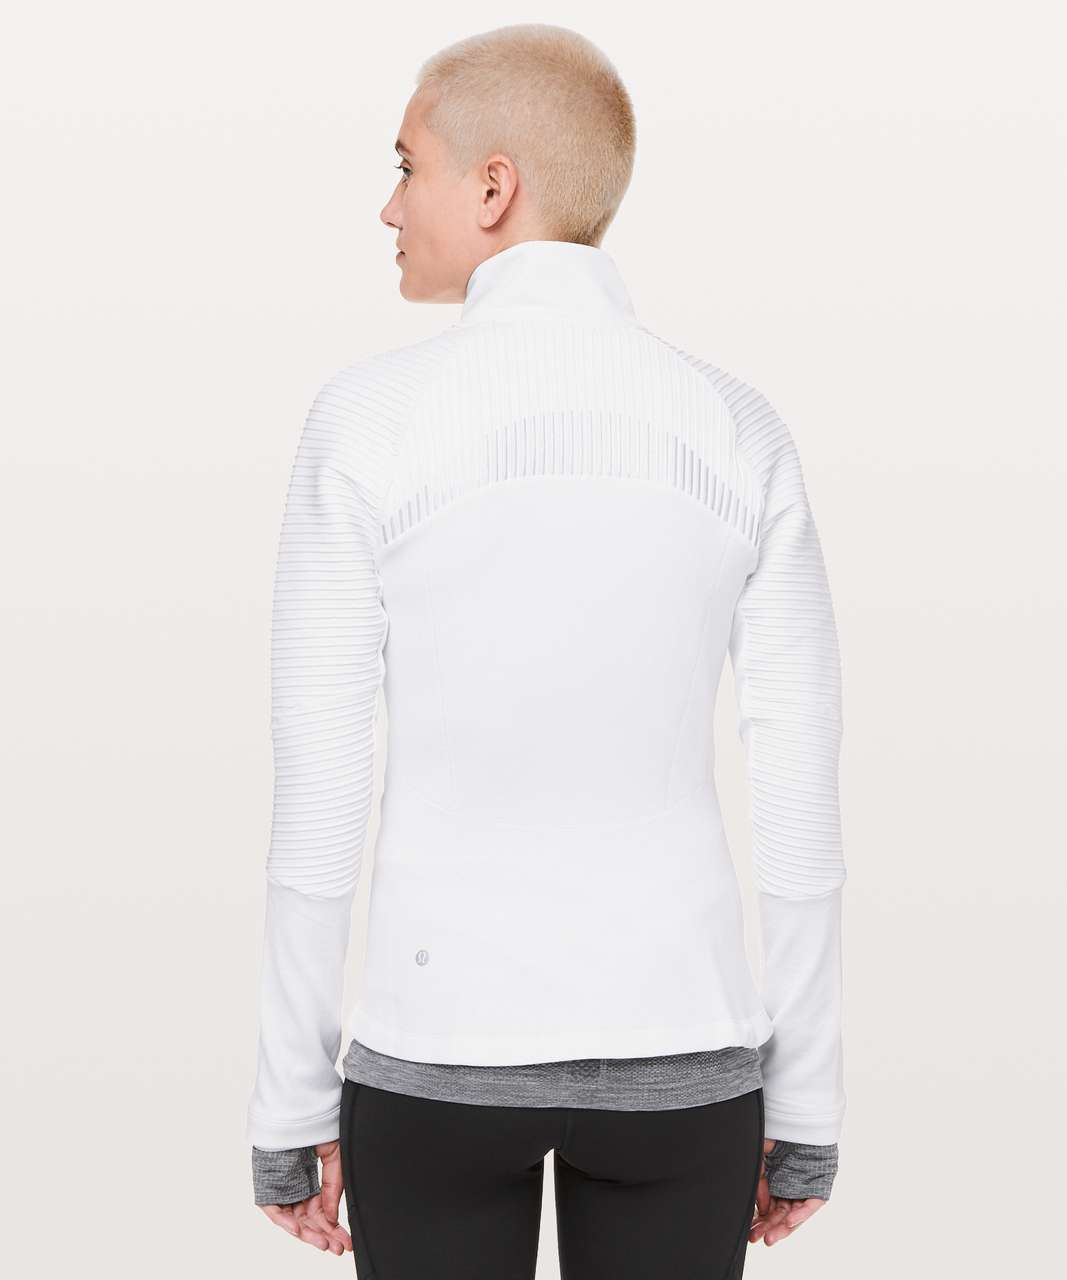 Lululemon Chill Going Strong Jacket - White